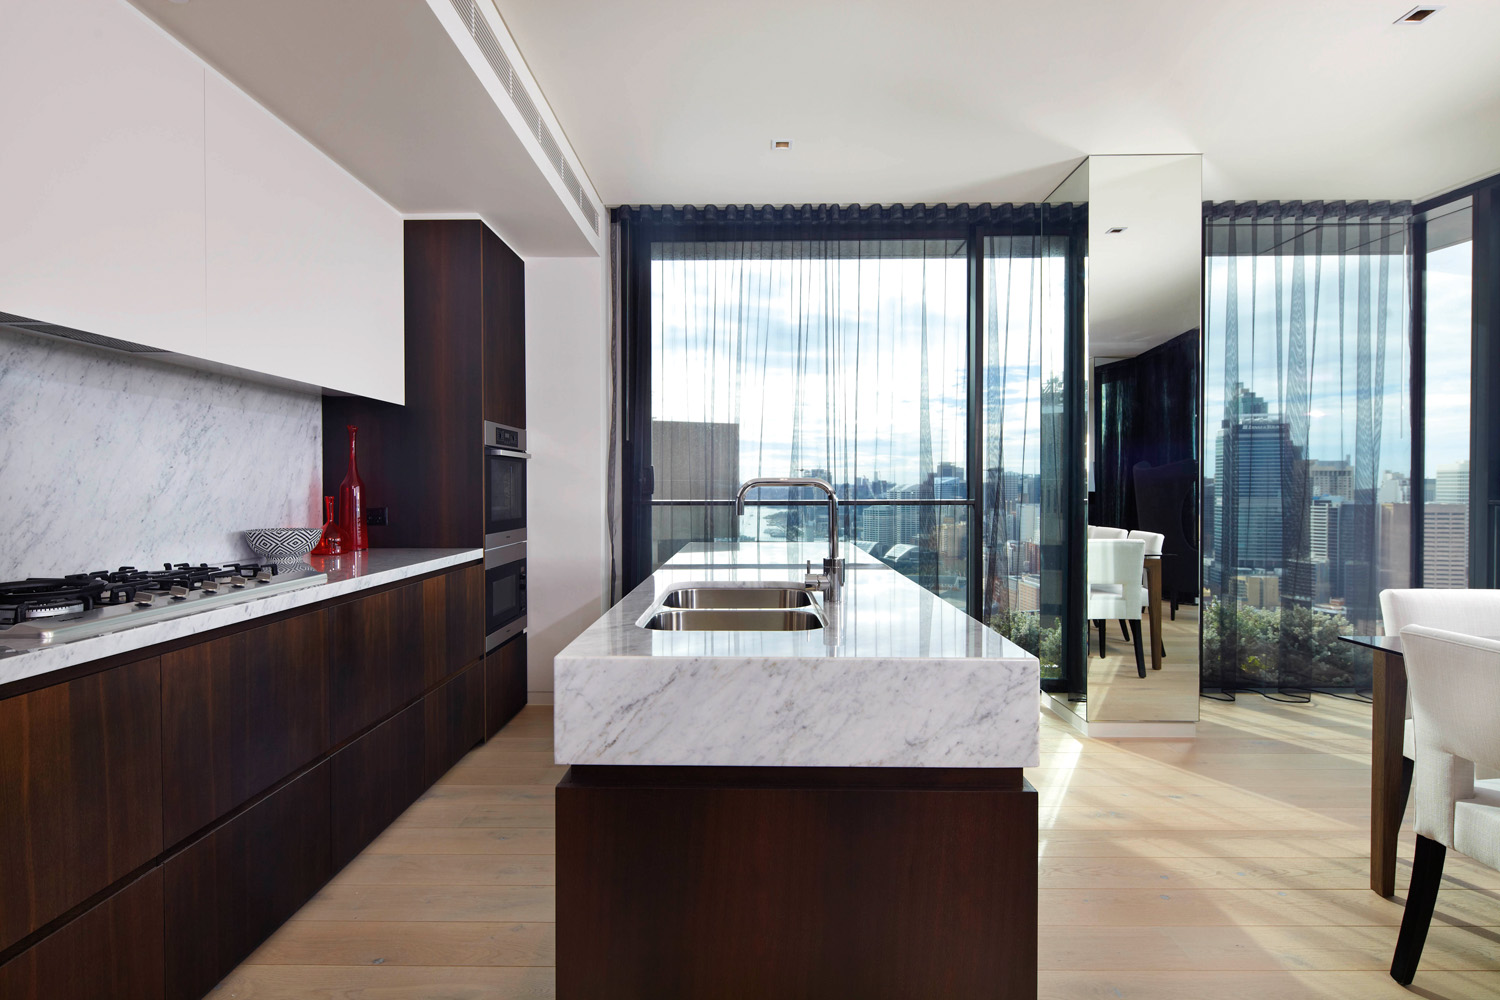 A generous kitchen calls on luxe materials to create a stunning space